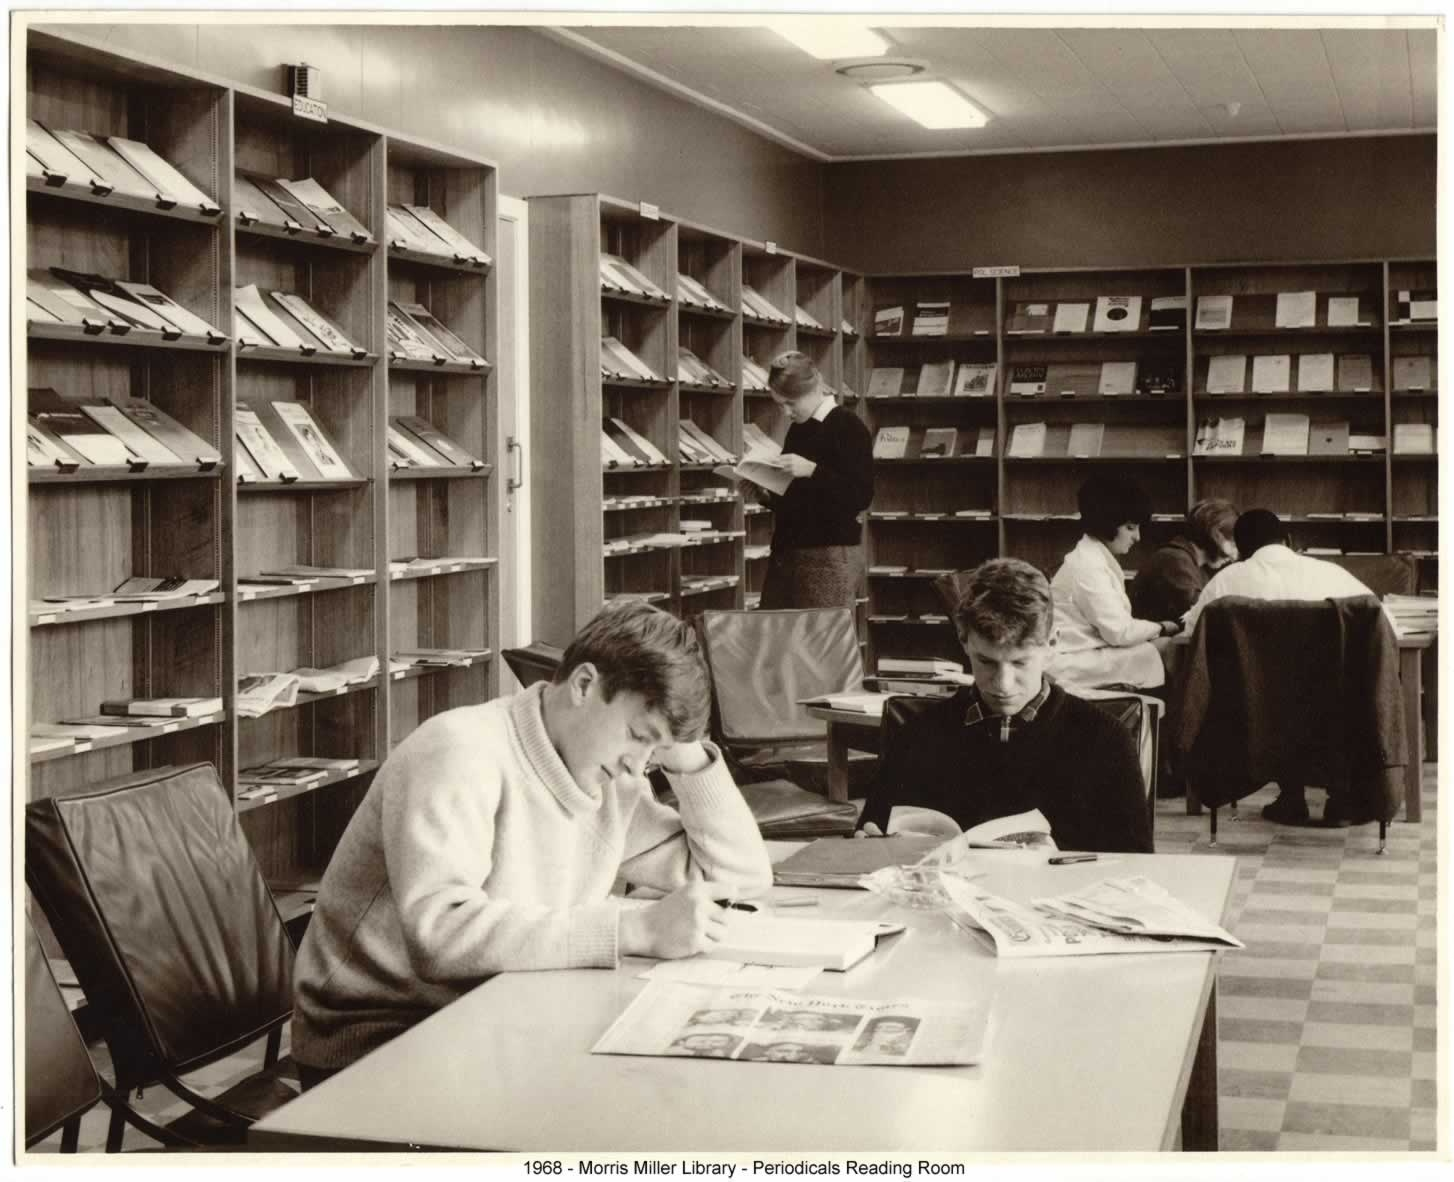 MM_PeriodicalsReadingRoom_1968_sml